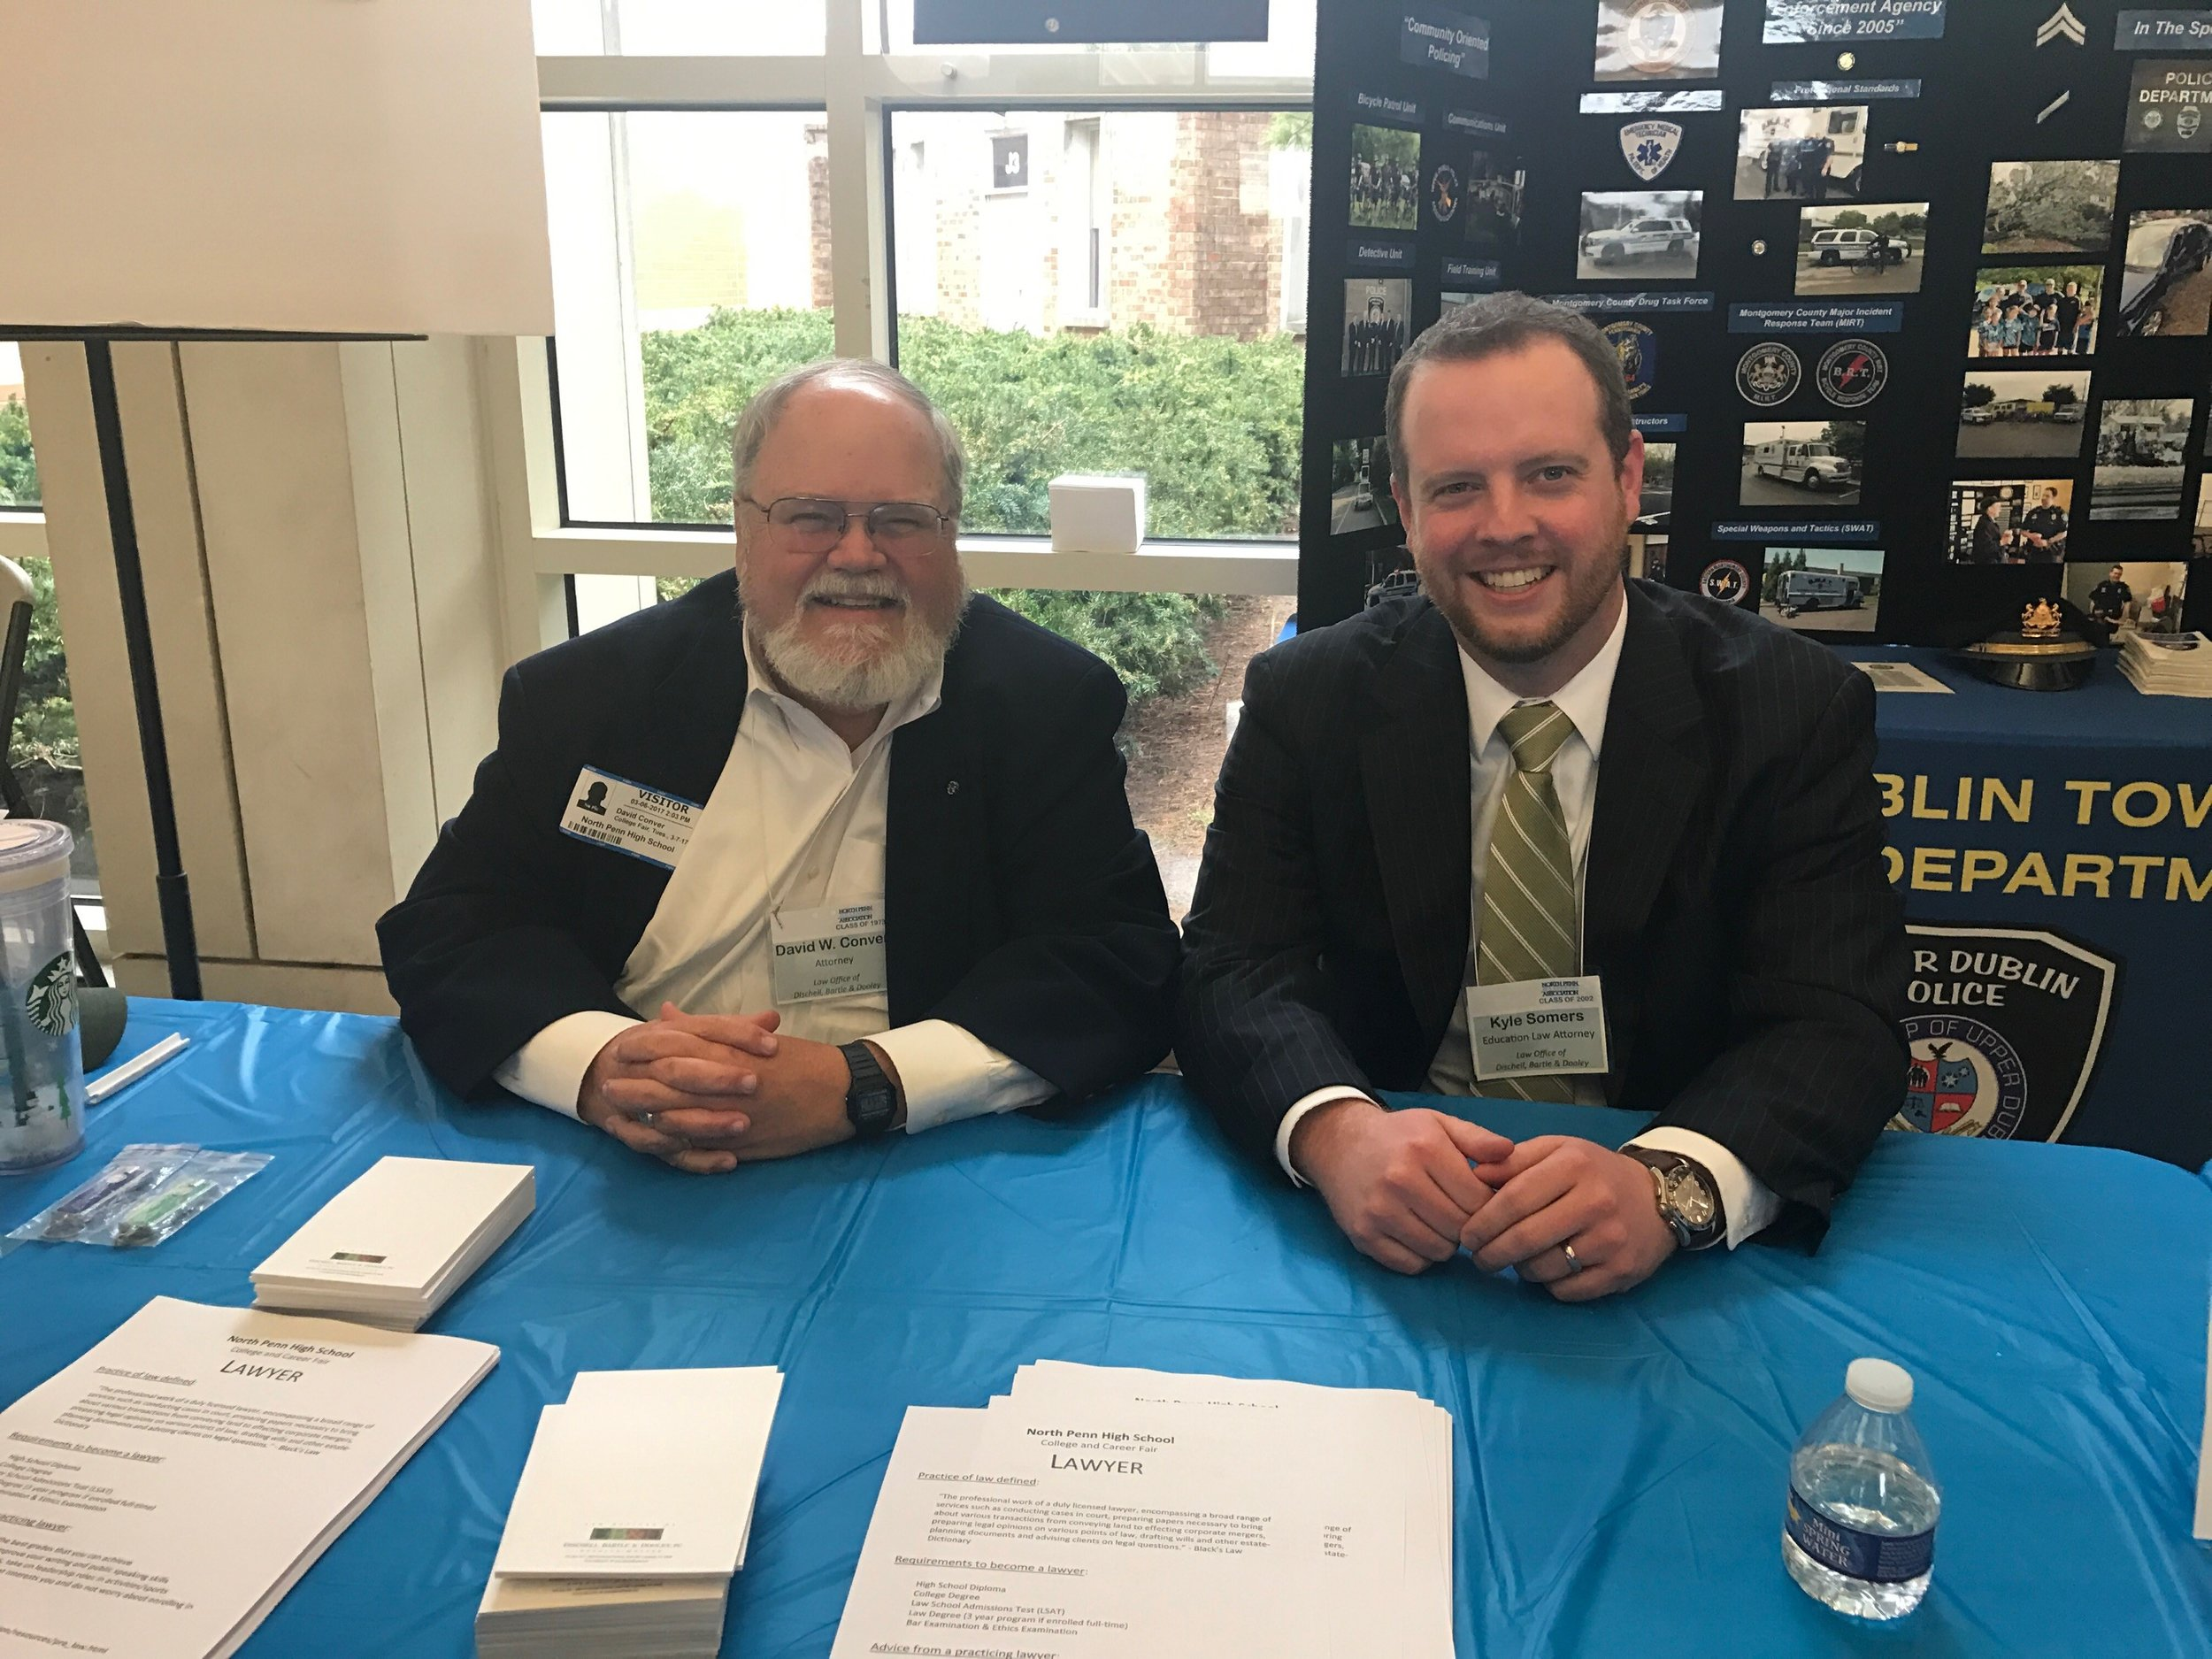 DBD attorneys David Conver and Kyle Somers representing DBD and the legal community at the North Penn HS College and Career Fair.